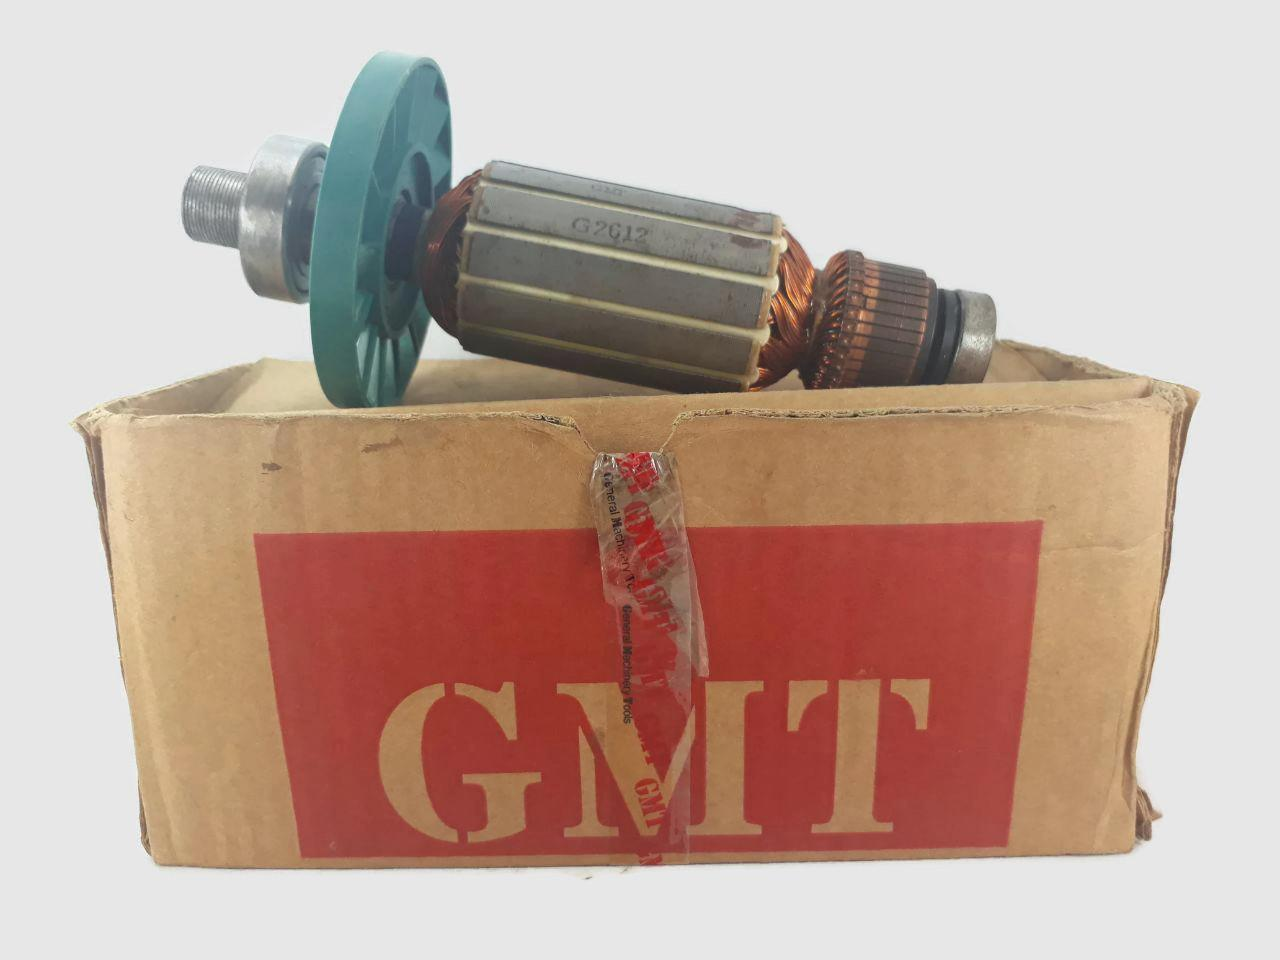 GMT Armature Anker Router Pahat 2612 - 3612